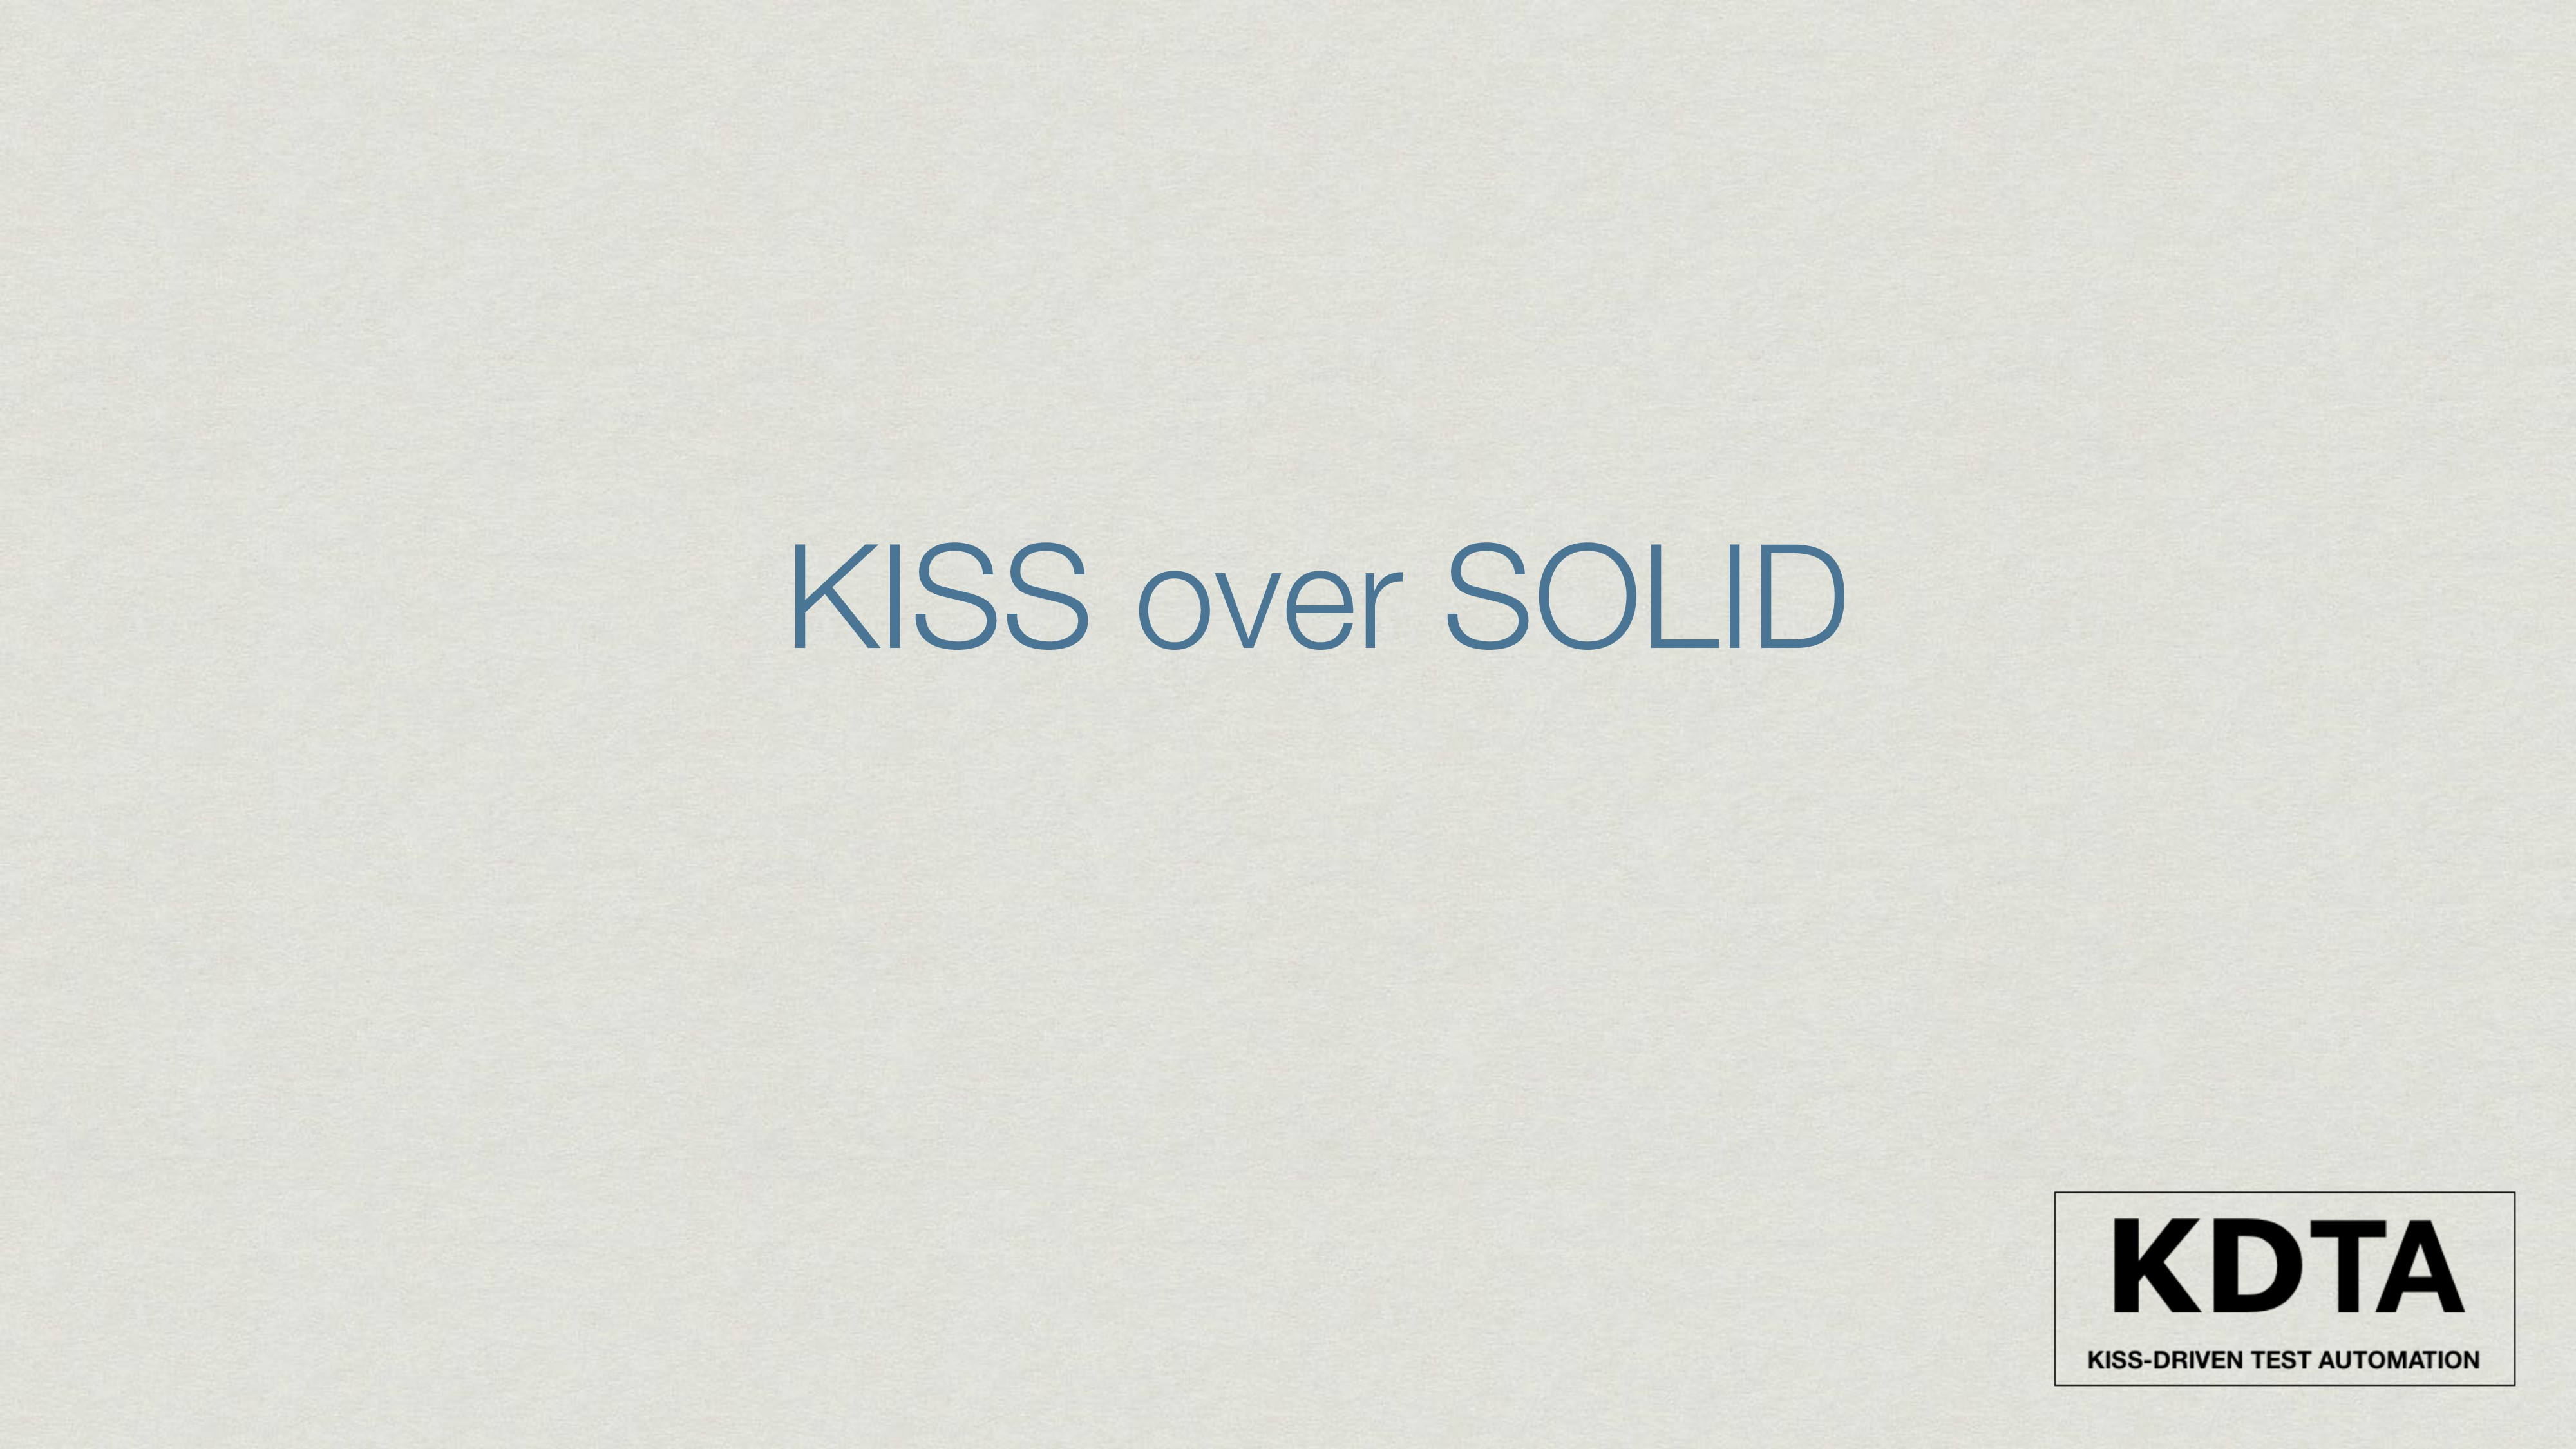 KISS over SOLID